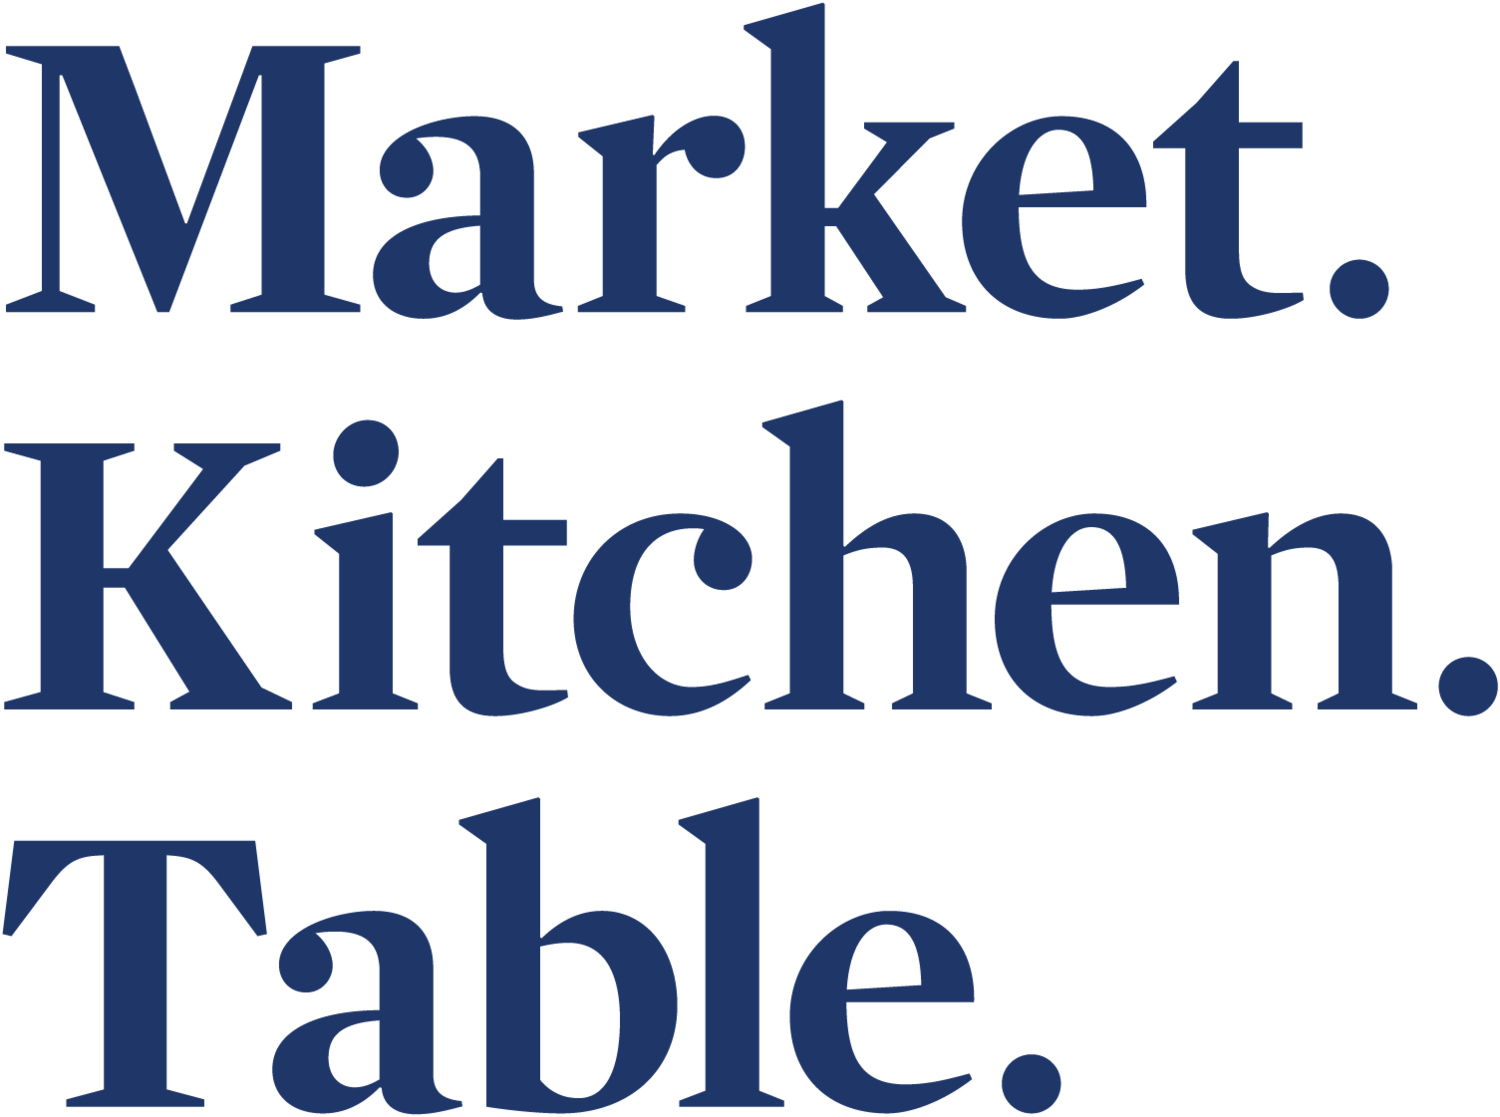 Market.Kitchen.Table.